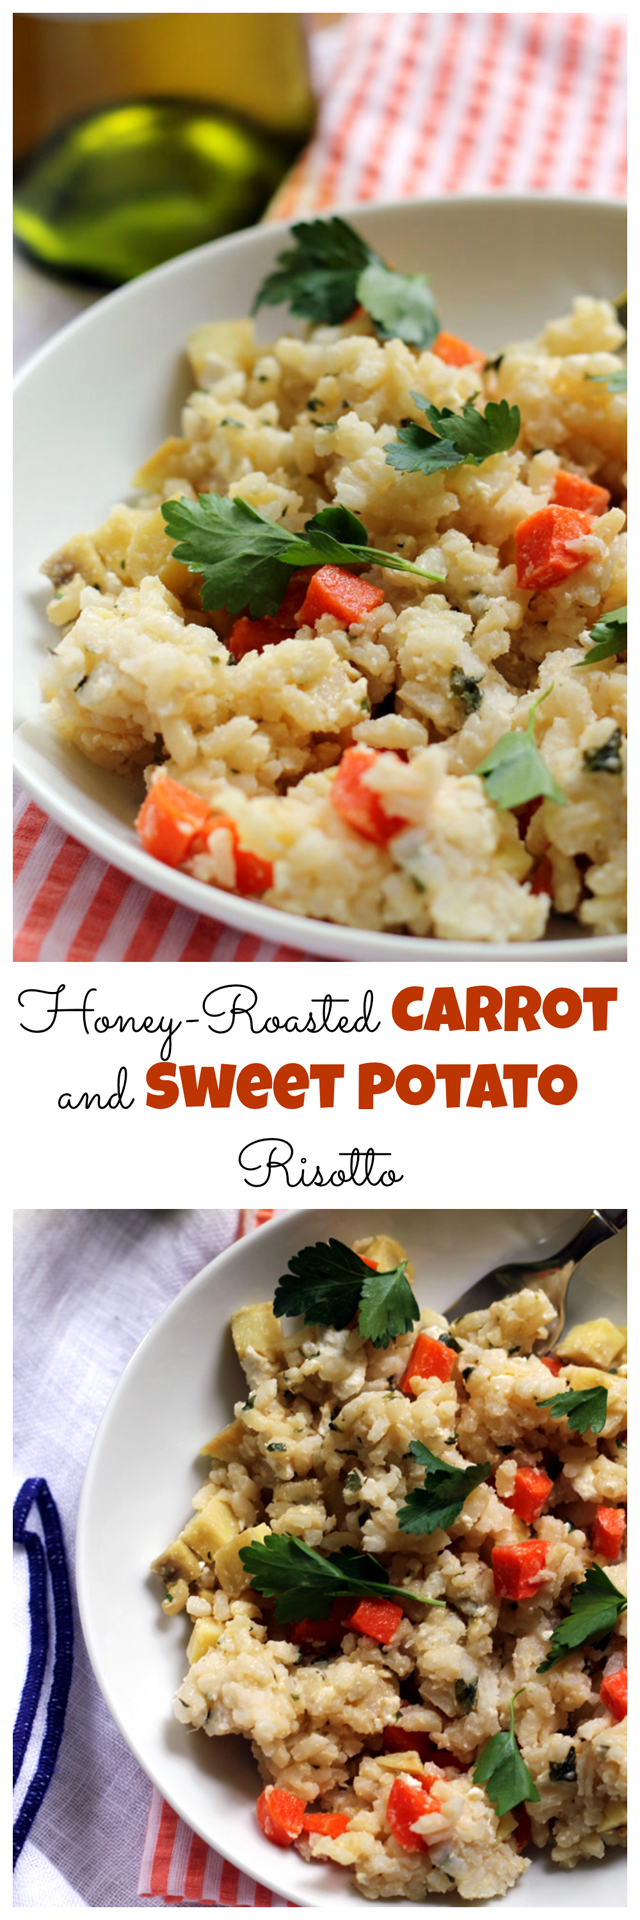 honey-roasted carrot and sweet potato risotto